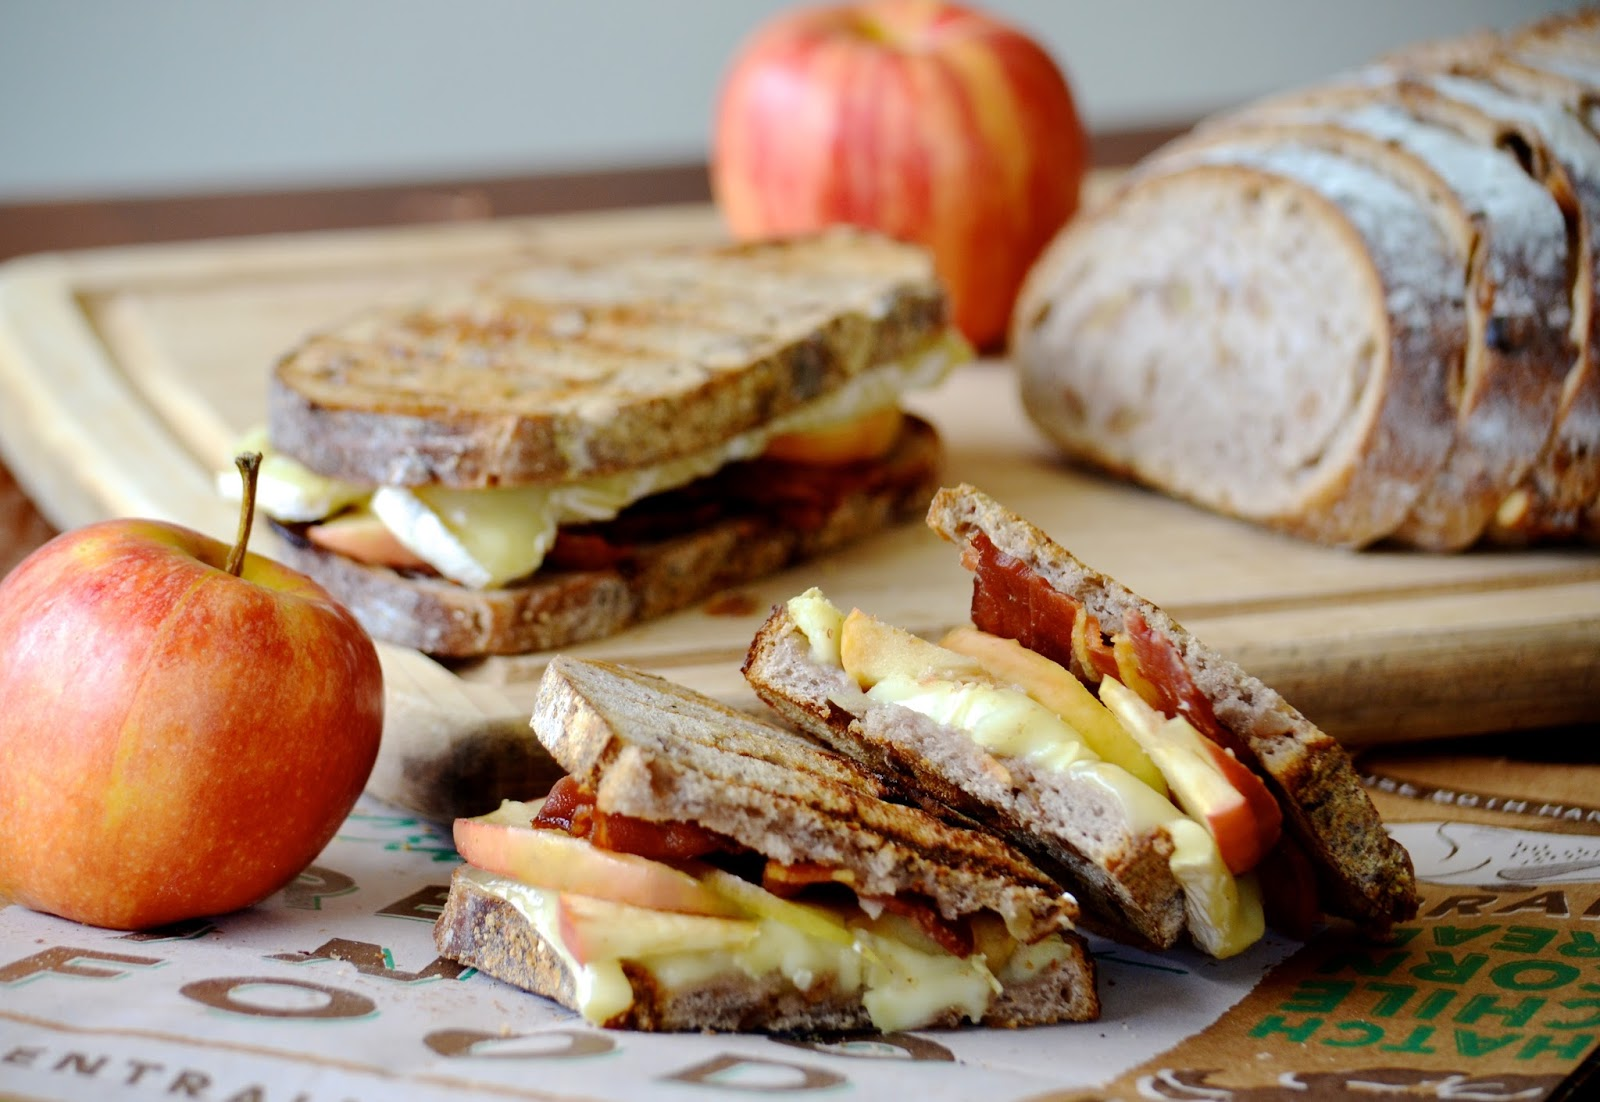 Apple, Bacon, Brie Panini, sandwich, lunch, bread, cheese, fruit